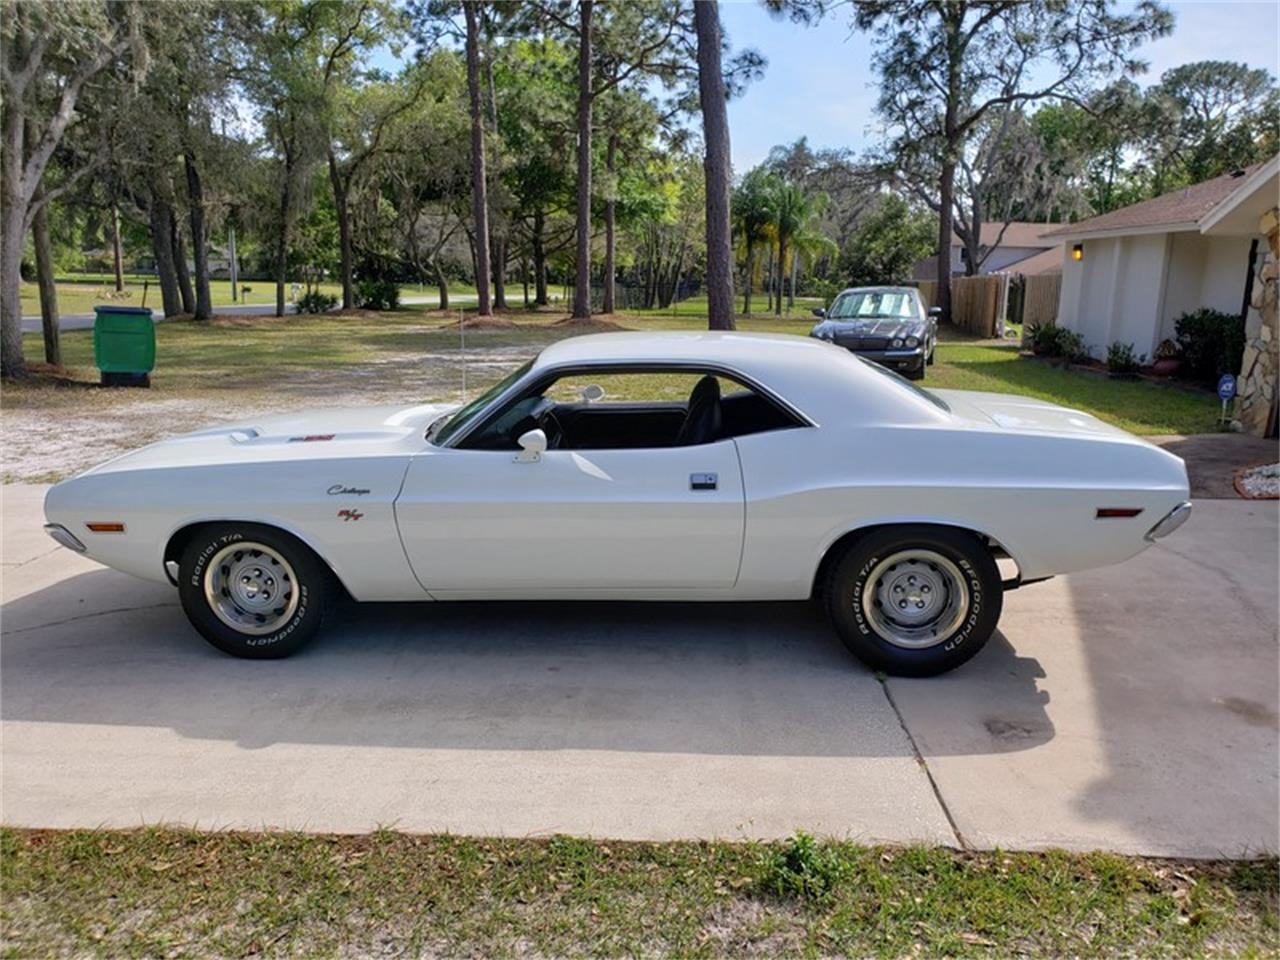 Large Picture of Classic 1970 Dodge Challenger R/T located in New Port Richey Florida - $69,500.00 Offered by a Private Seller - Q72C